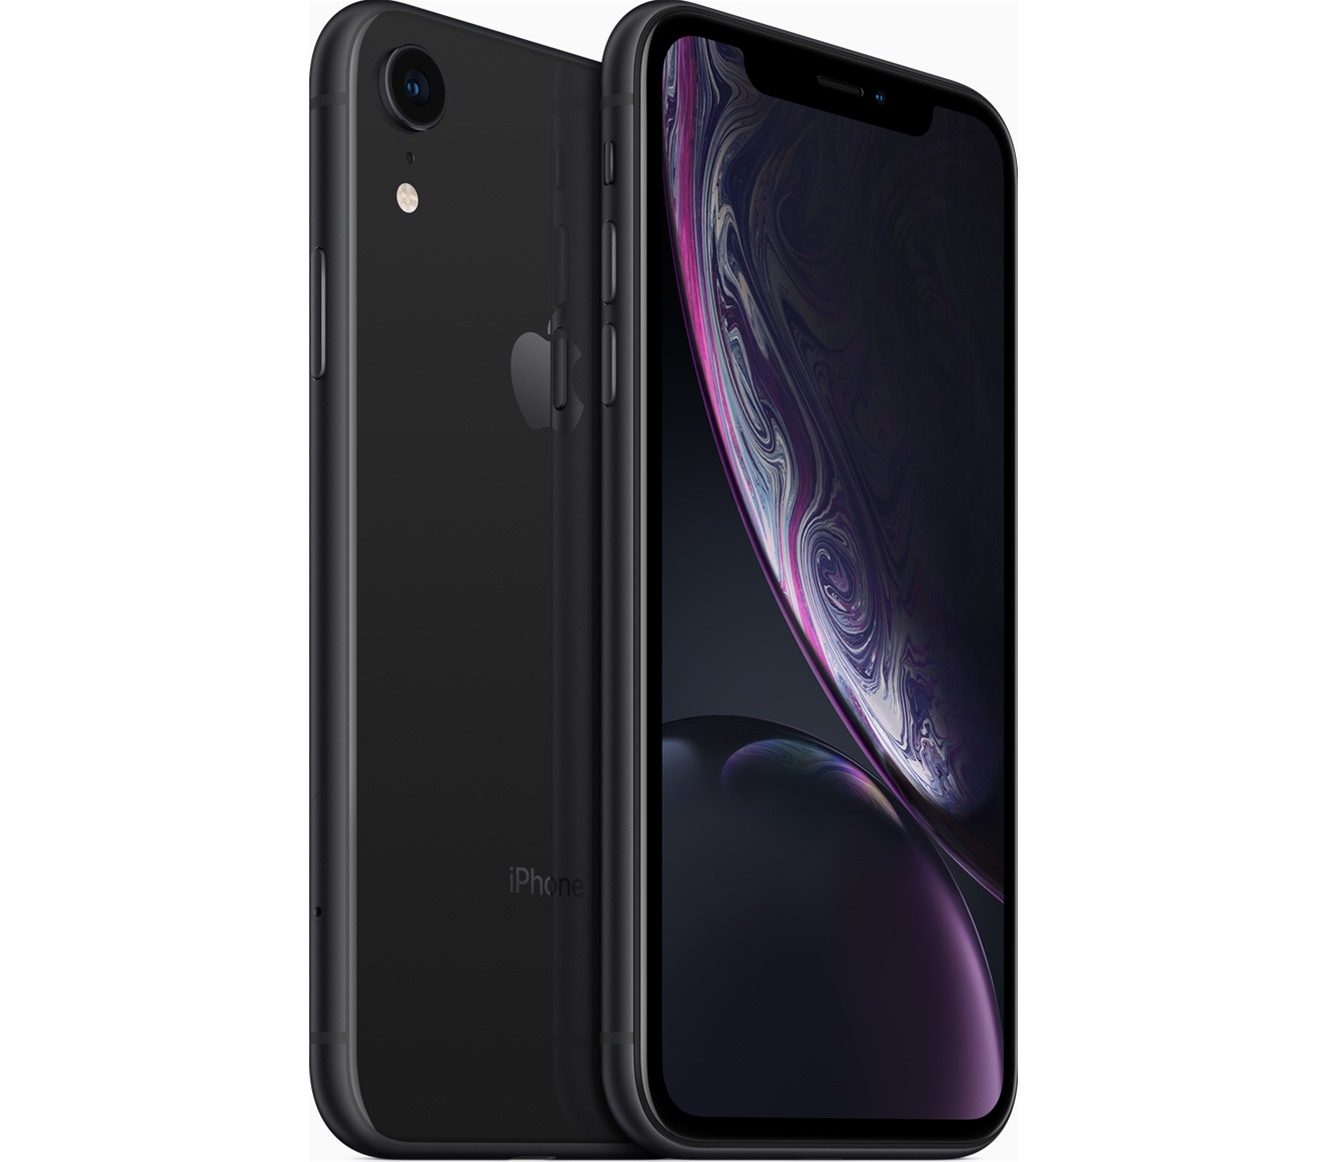 Apple iPhone Xr 128gb Smartphone Black